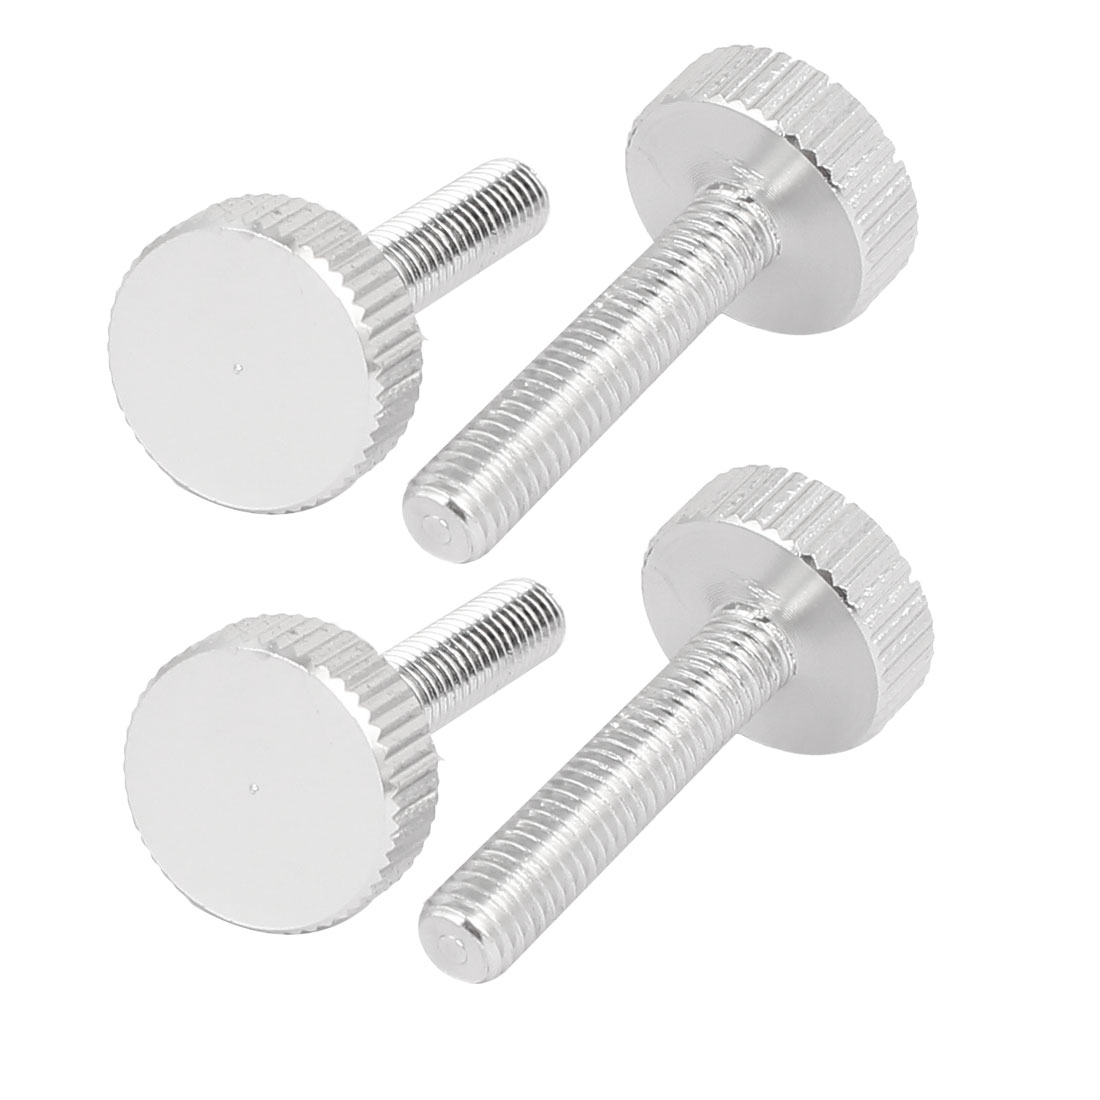 Computer PC Case Aluminum Knurled Head Thumb Screws Silver Tone M5x25mm 4pcs